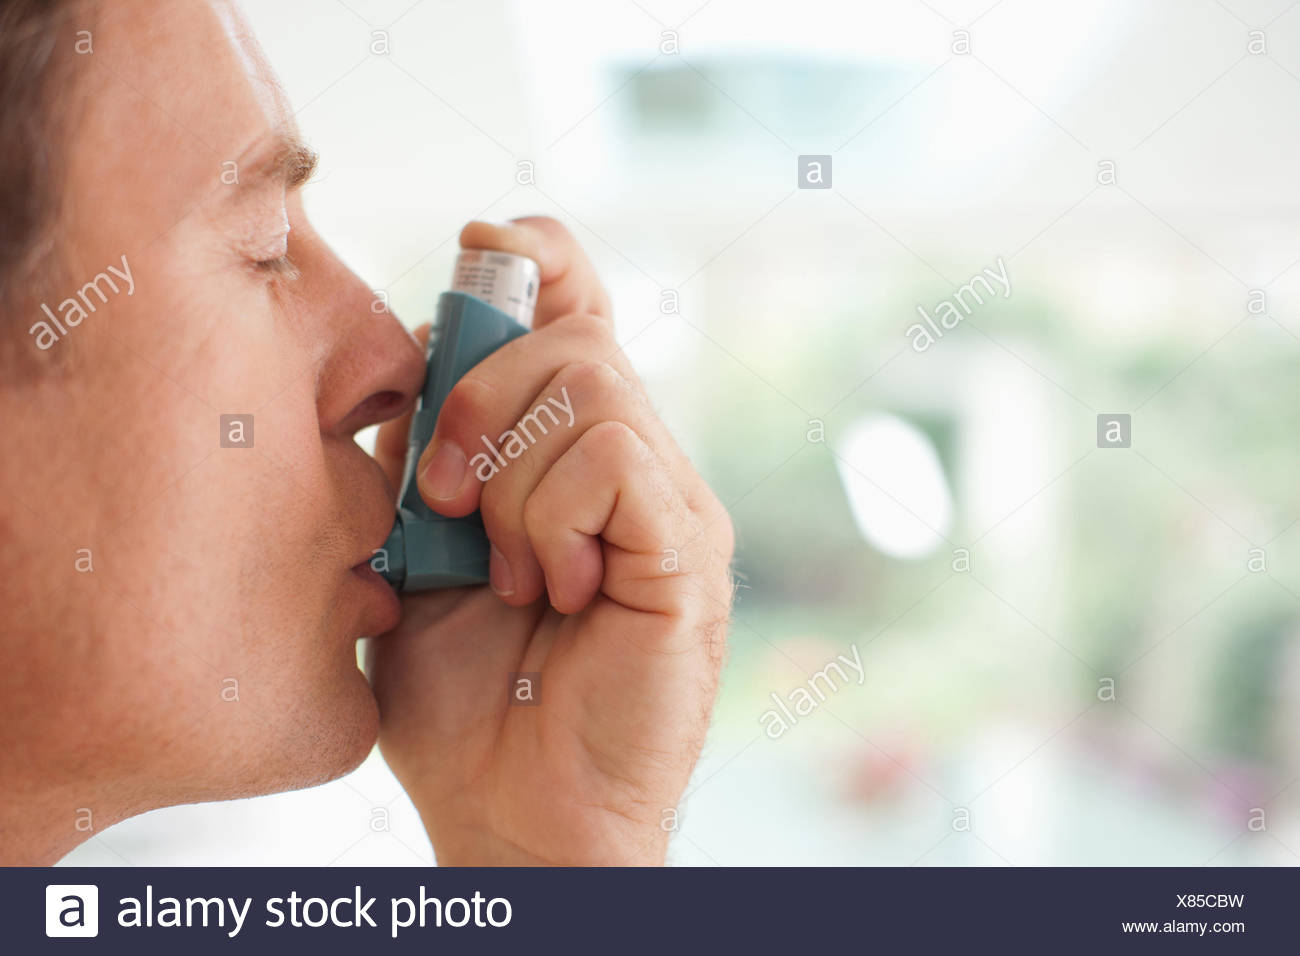 Man about to use asthma inhaler - Stock Image